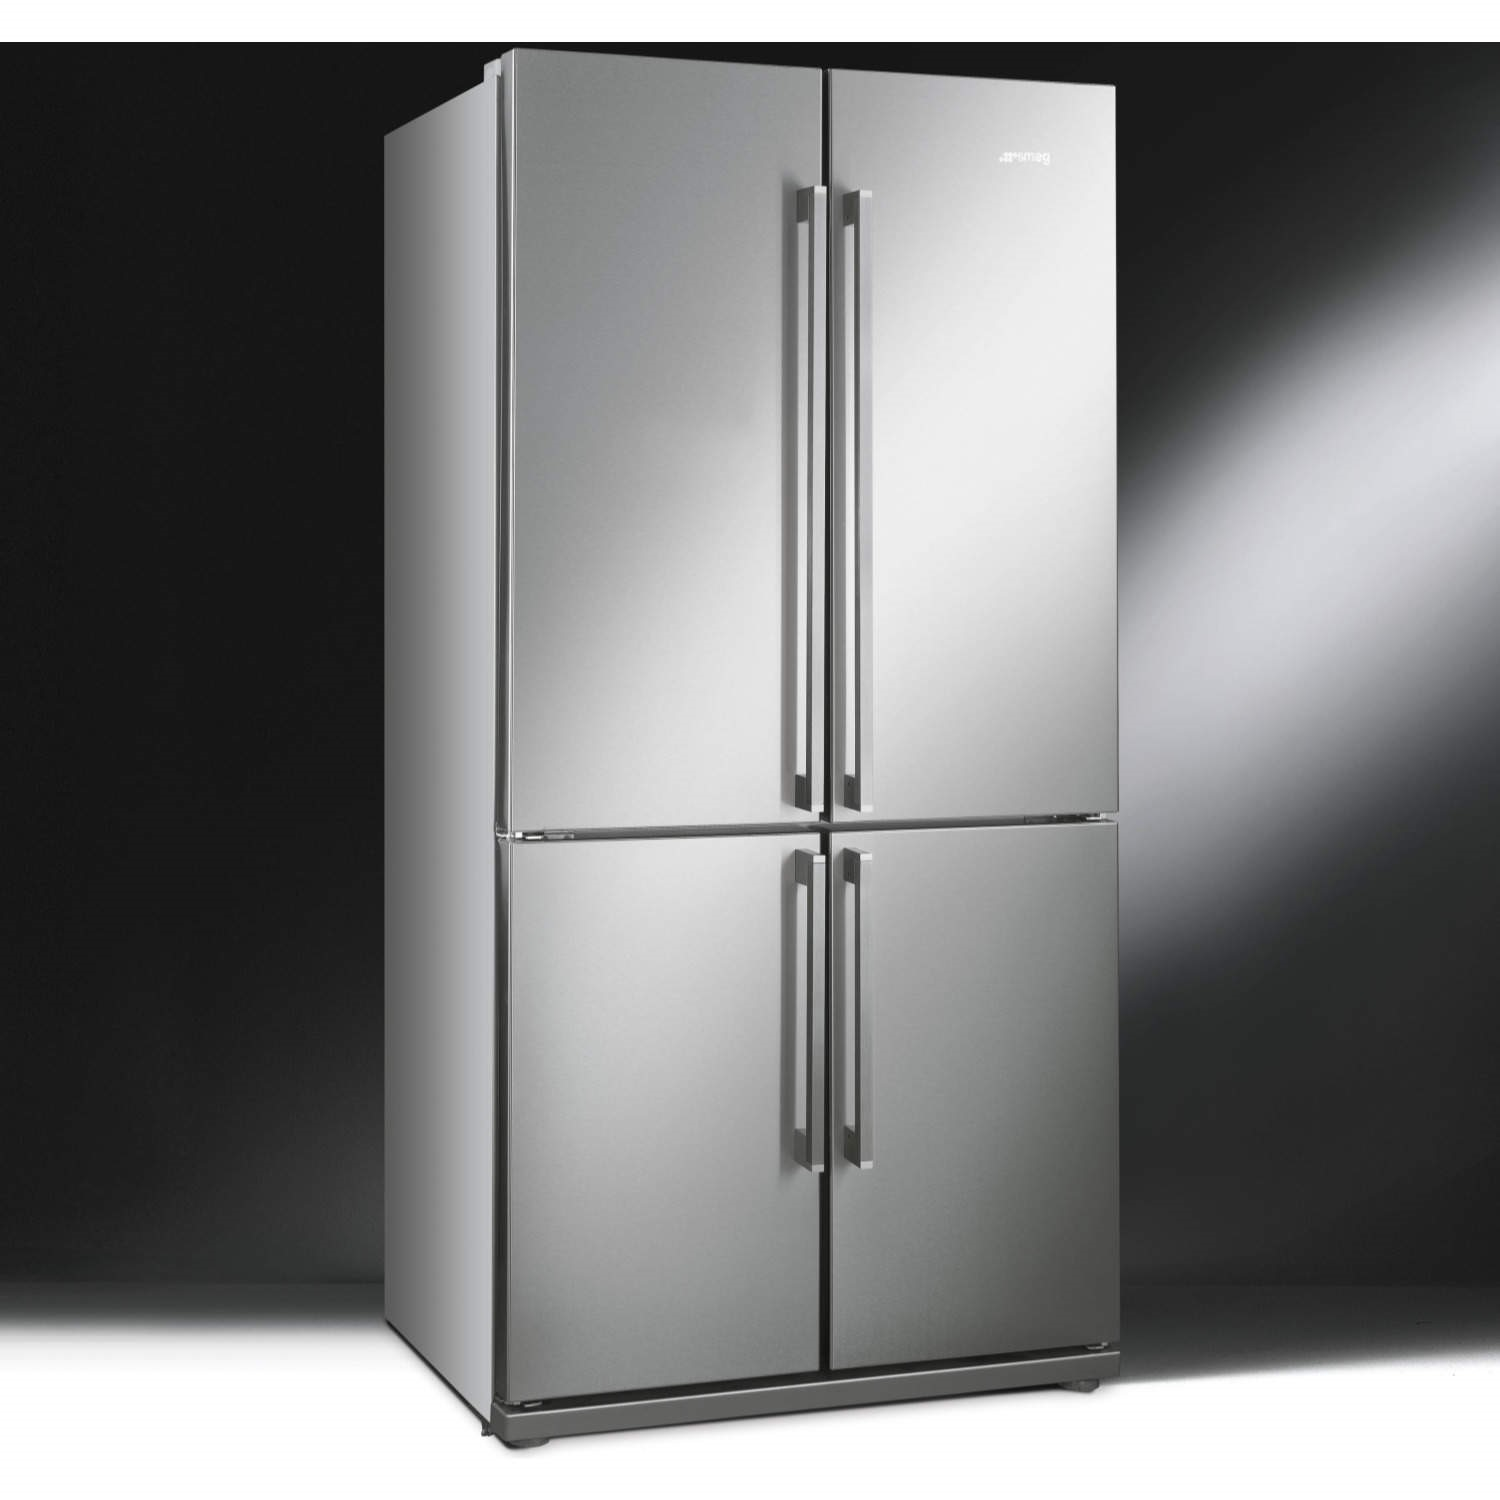 American Fridge Freezer Part - 48: Smeg FQ60XP Stainless Steel 4-Door American Fridge Freezer With Convertible  Compartment